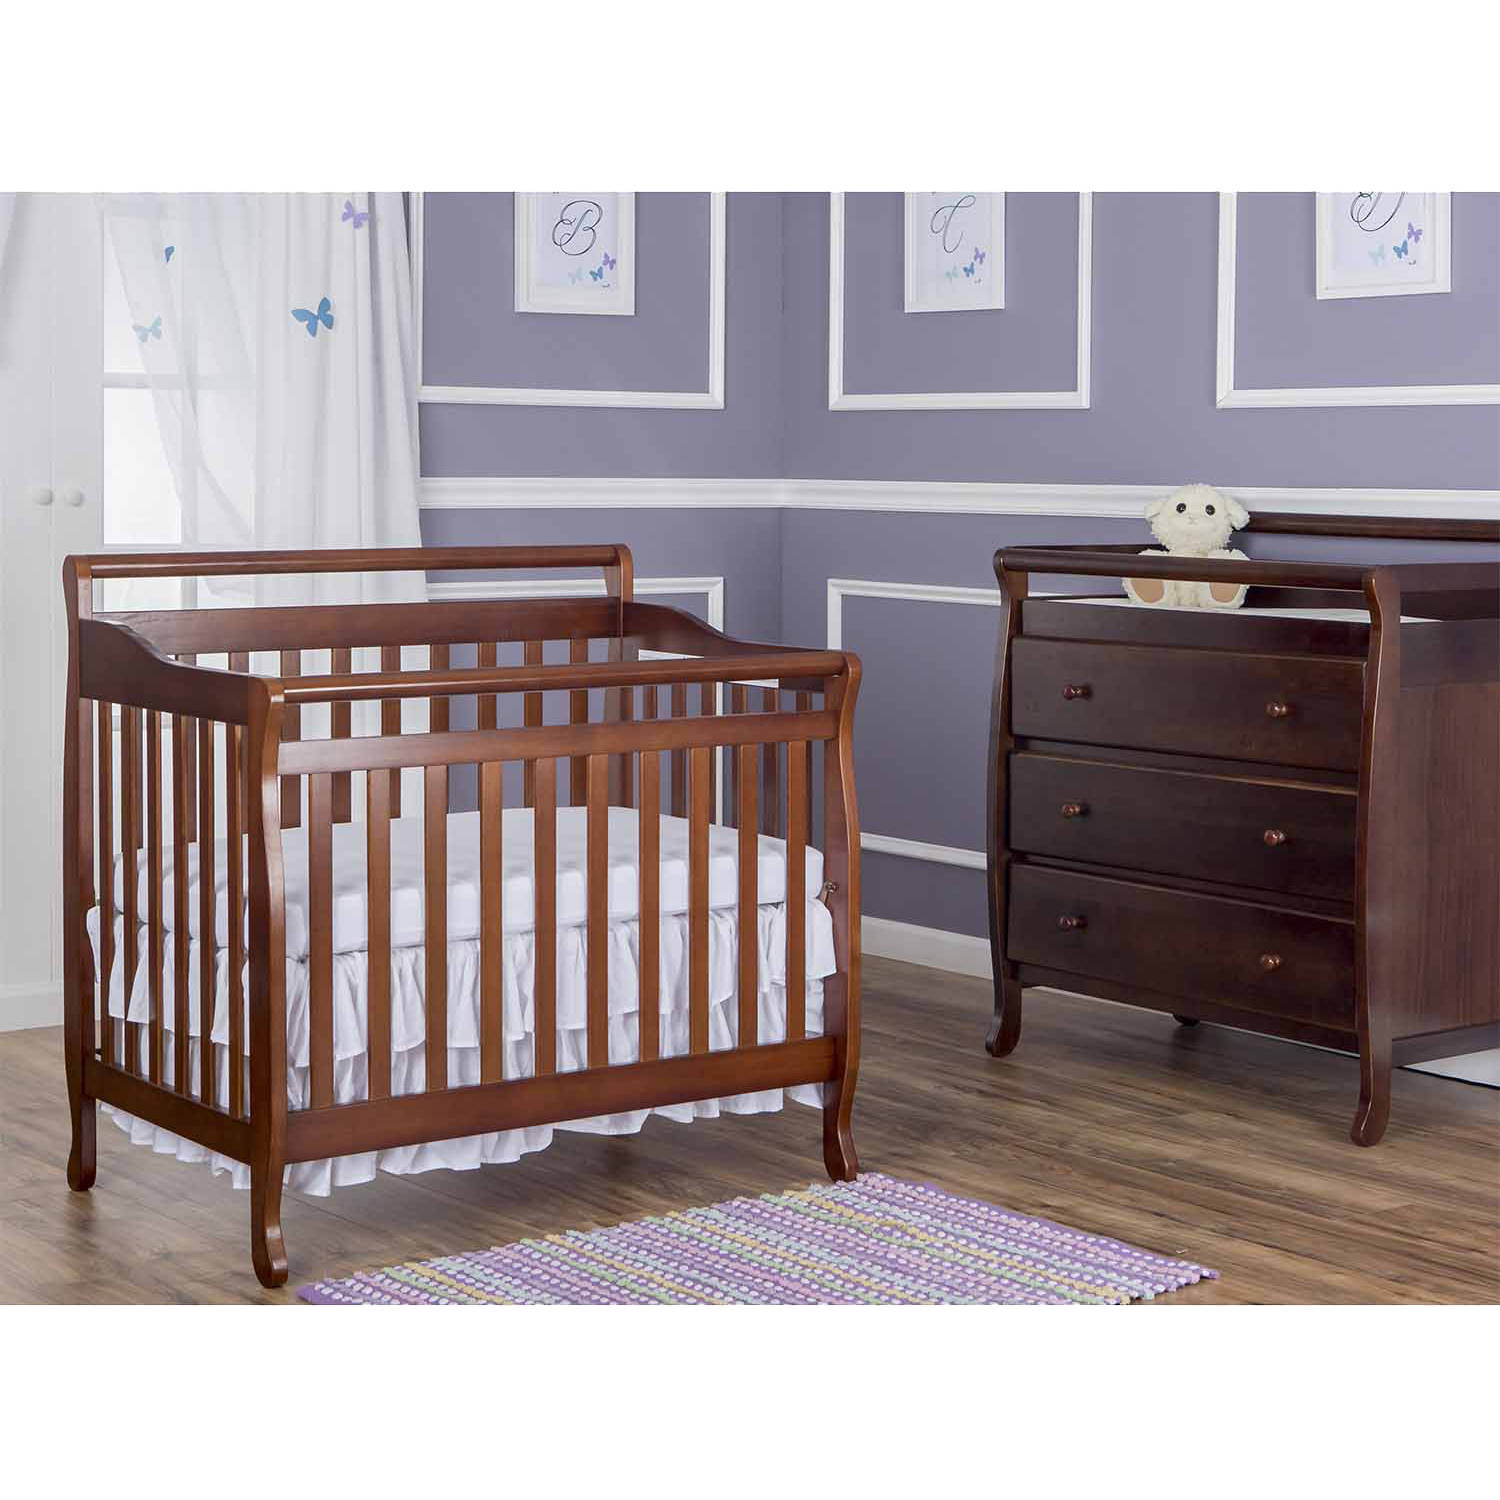 Dream On Me 4-in-1 Portable Convertible Crib, Choose Your Finish